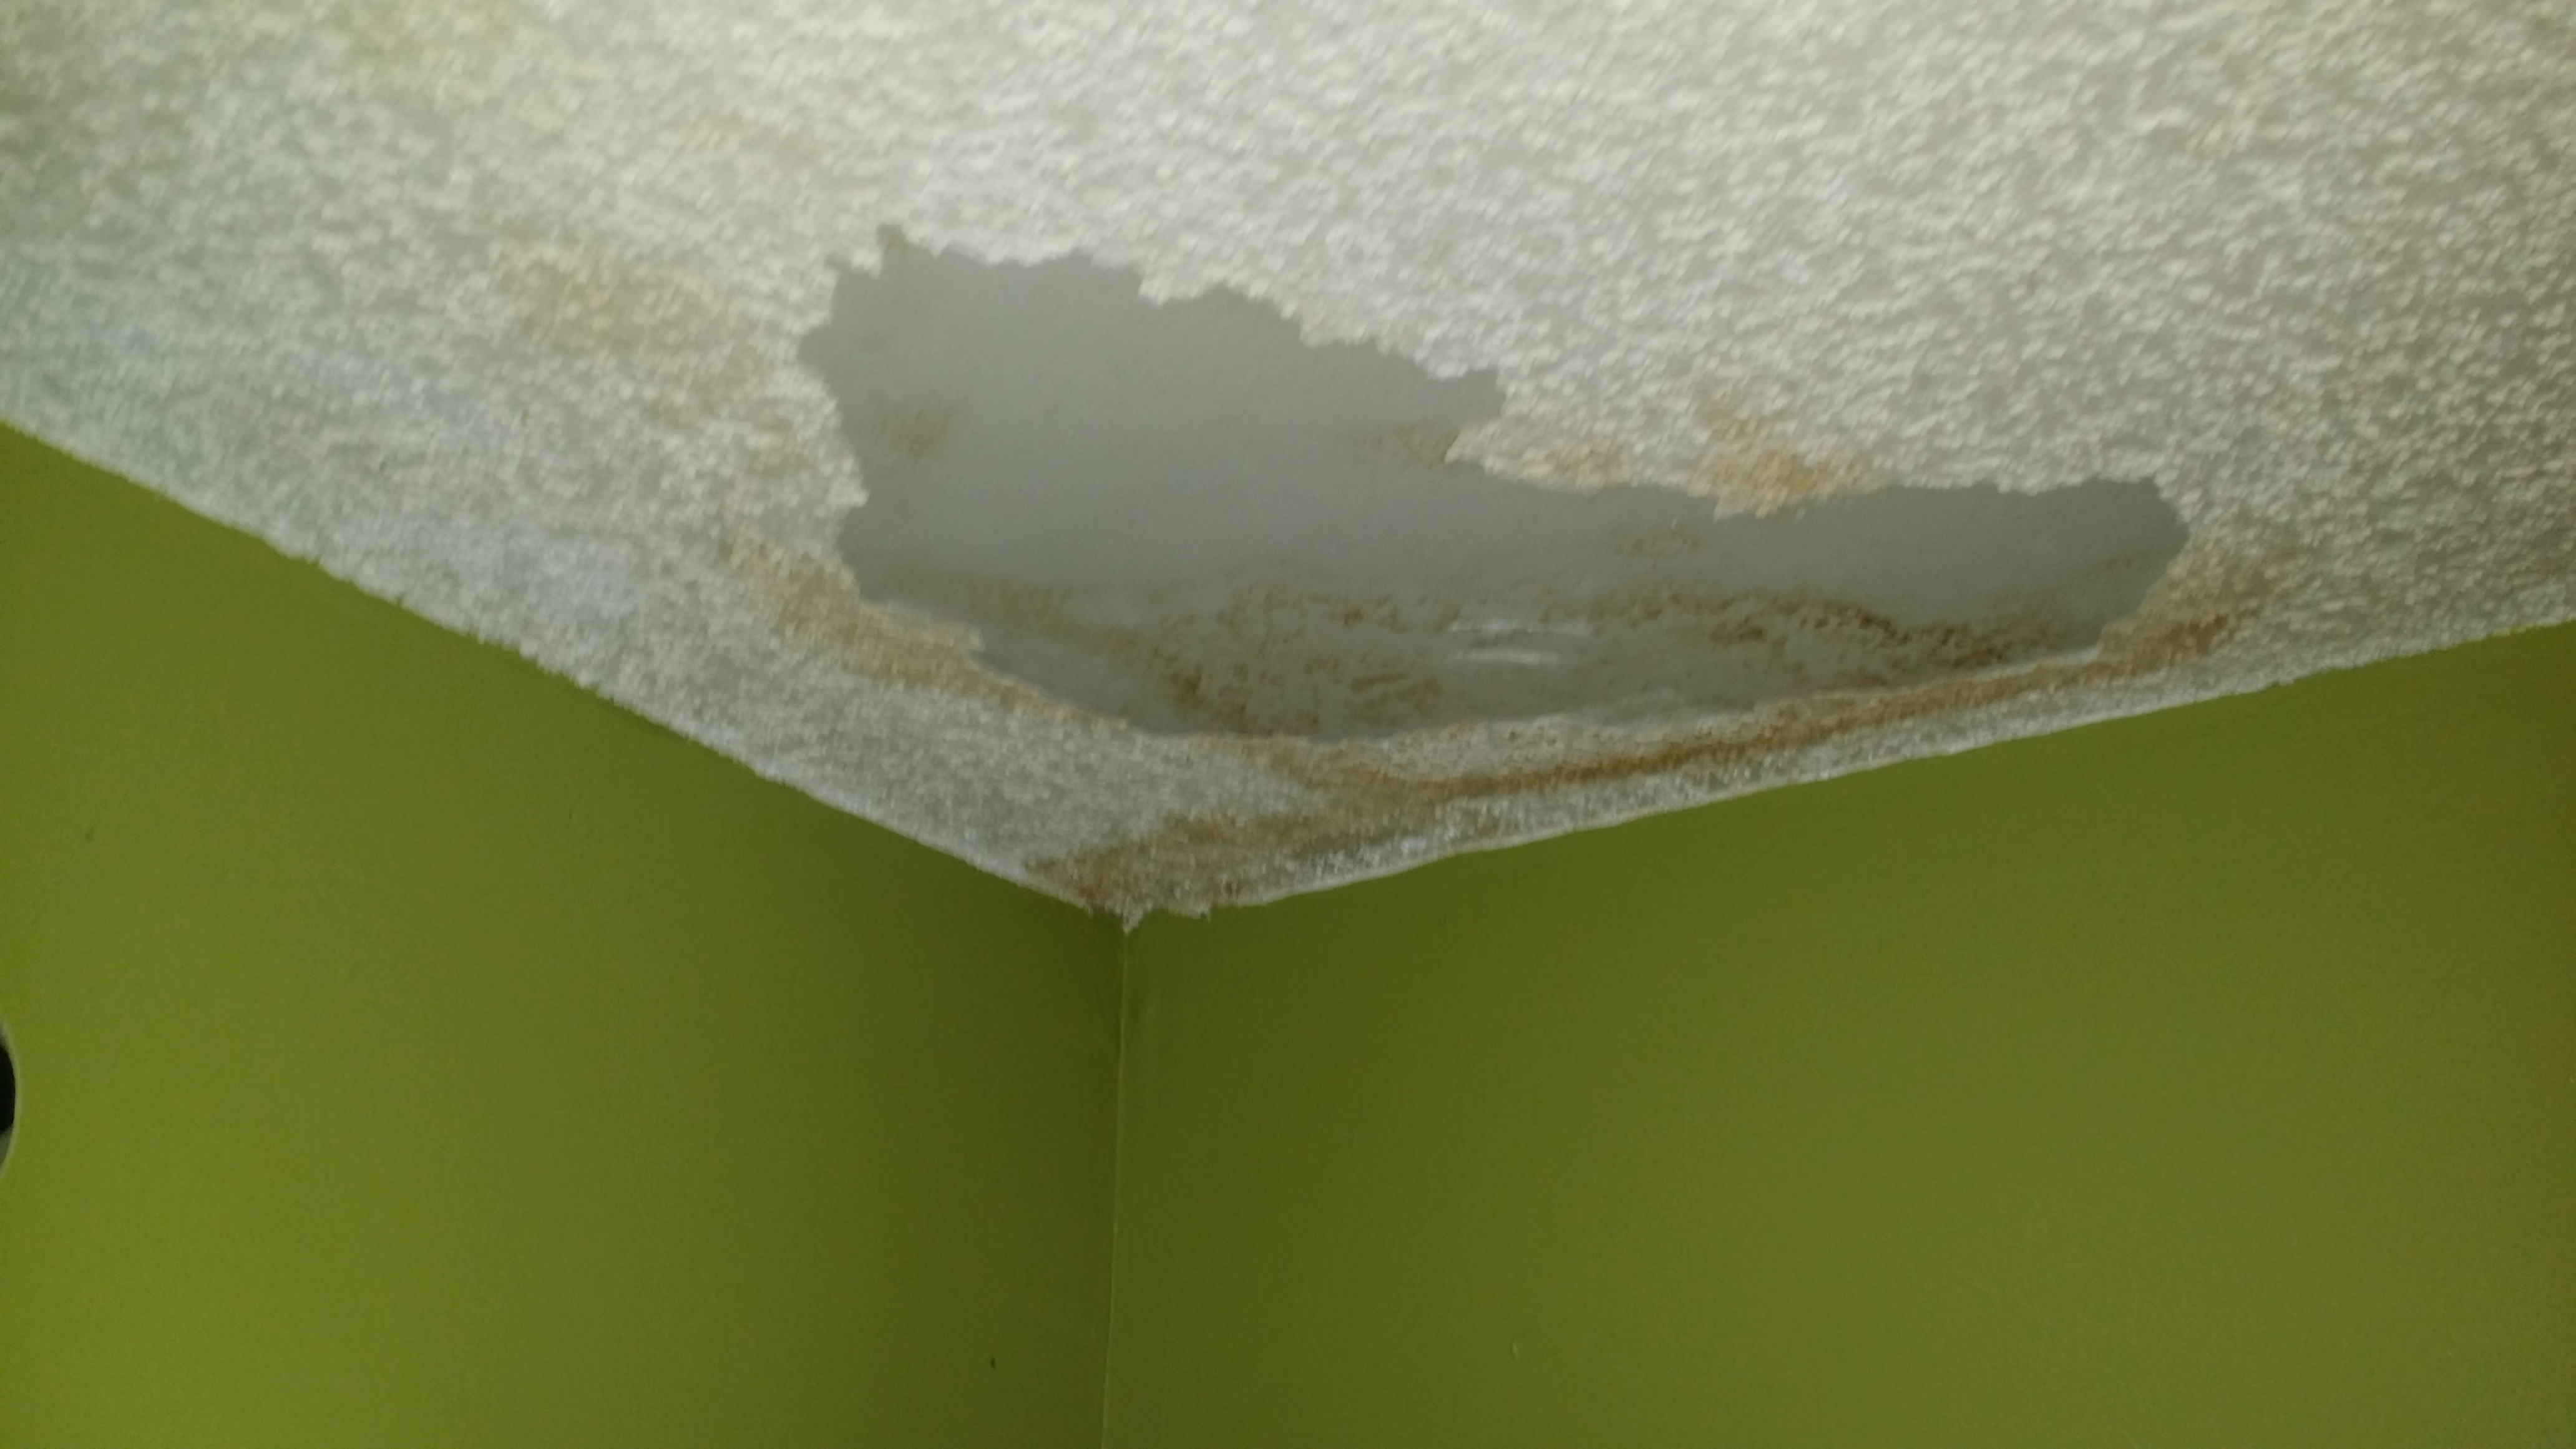 Water Stains From Roof Leak